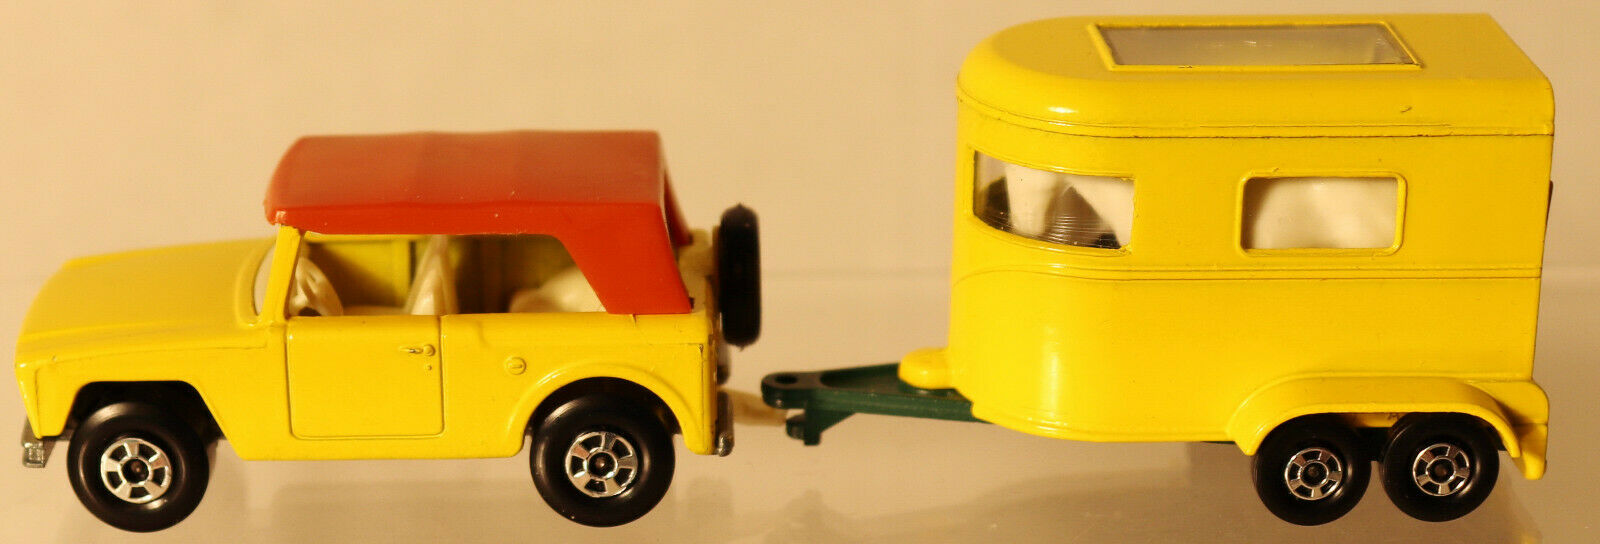 DTE 2 LESNEY MATCHBOX TRANSITIONAL SUPERFAST 18-A FIELD CAR & 43-A PONY TRAILER